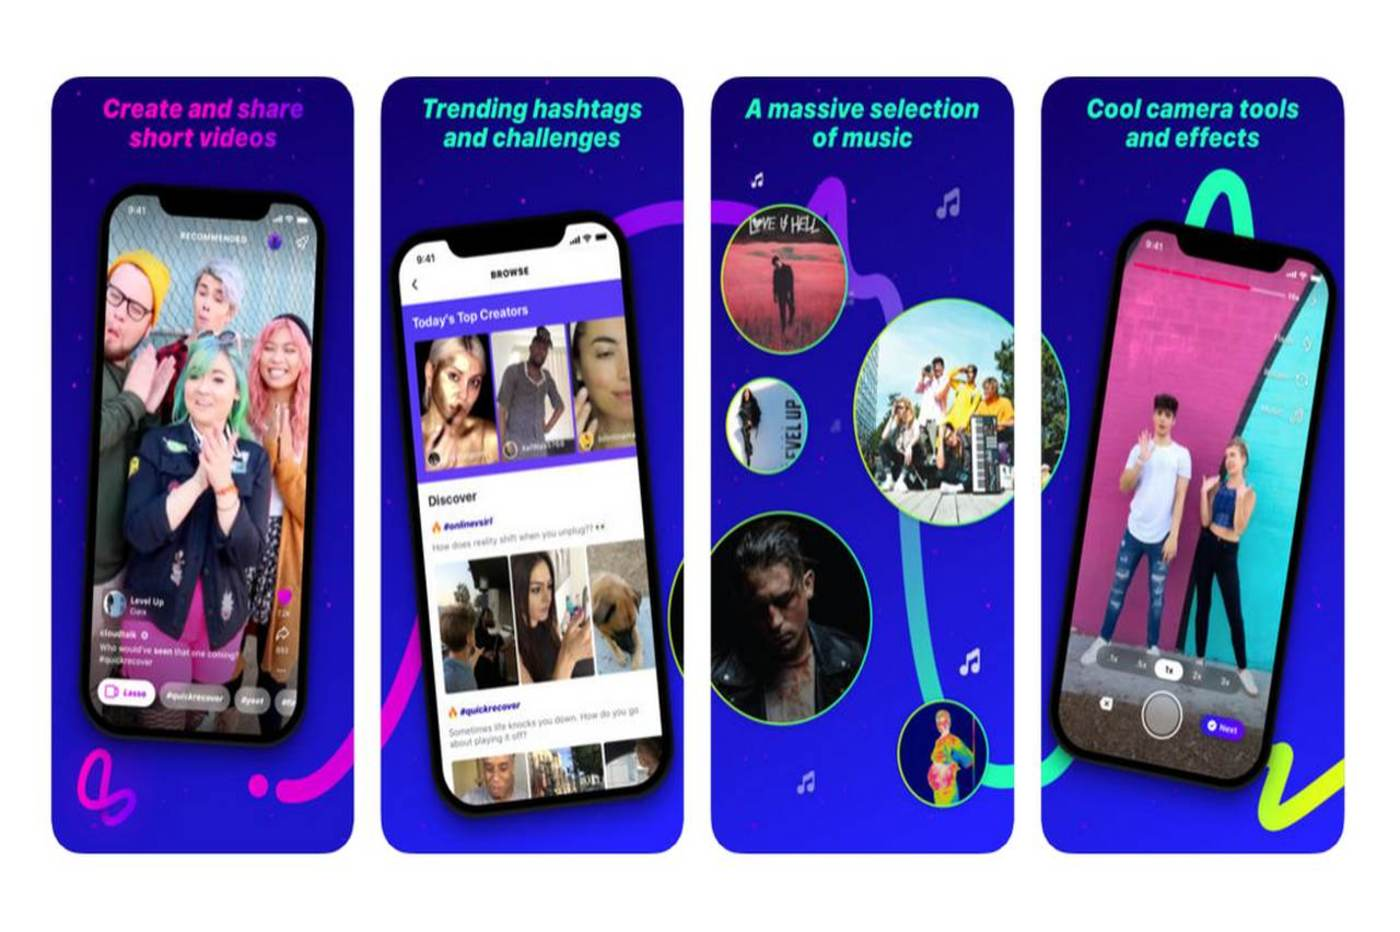 FACEBOOK VA FERMER SON APPLICATION CLONE DE TIKTOK